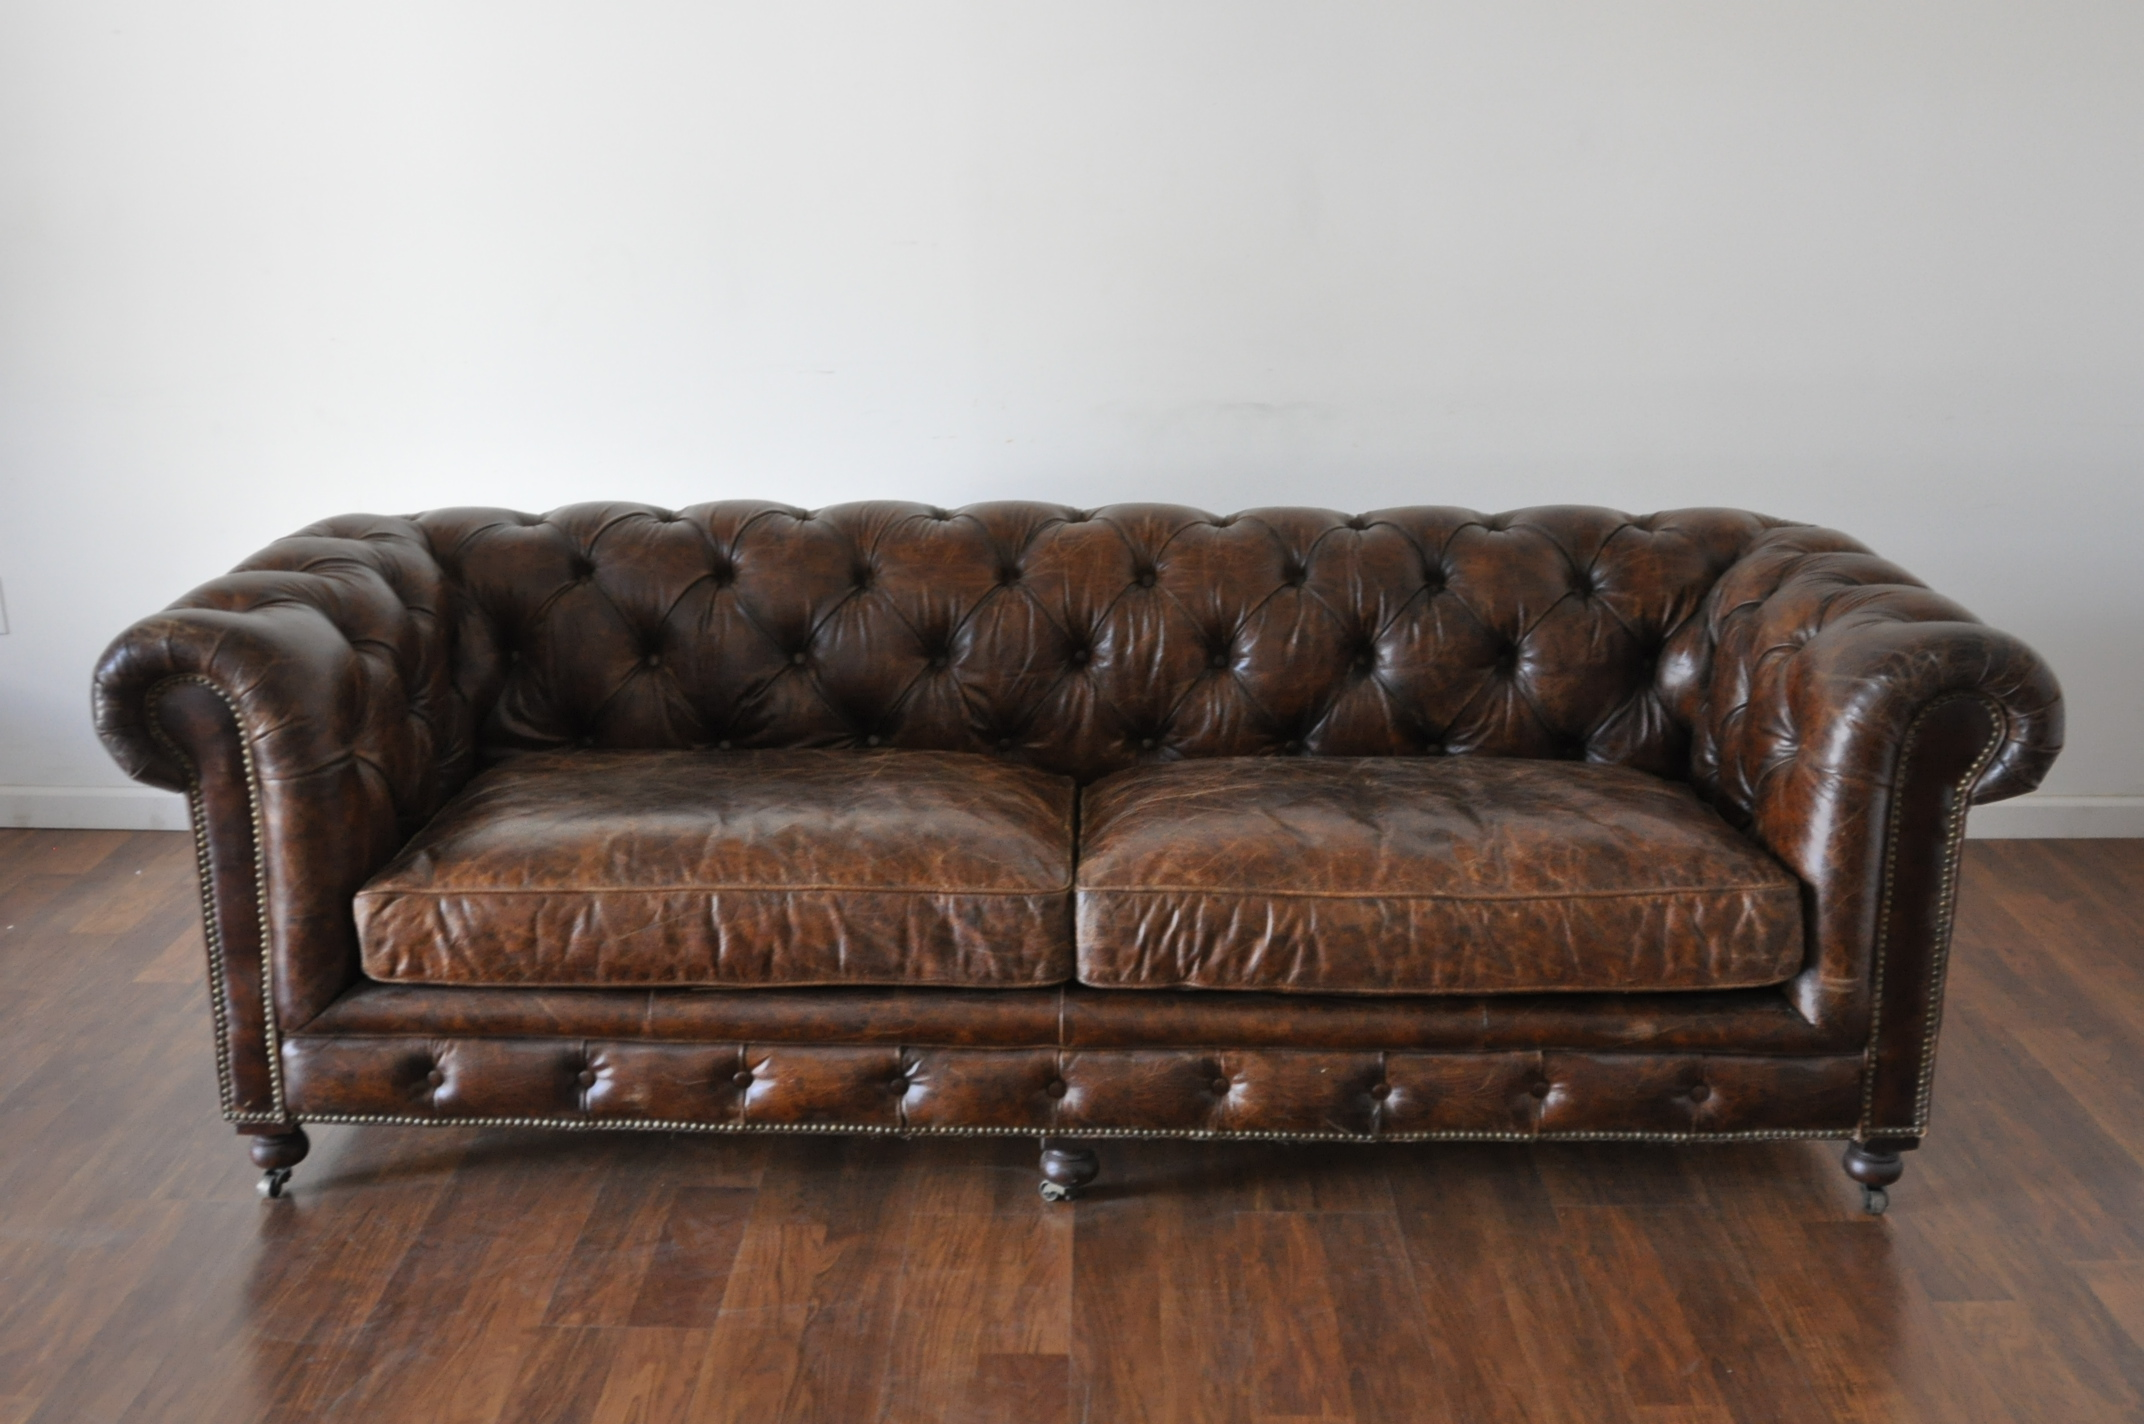 Merveilleux Small David Tufted Leather Sofa